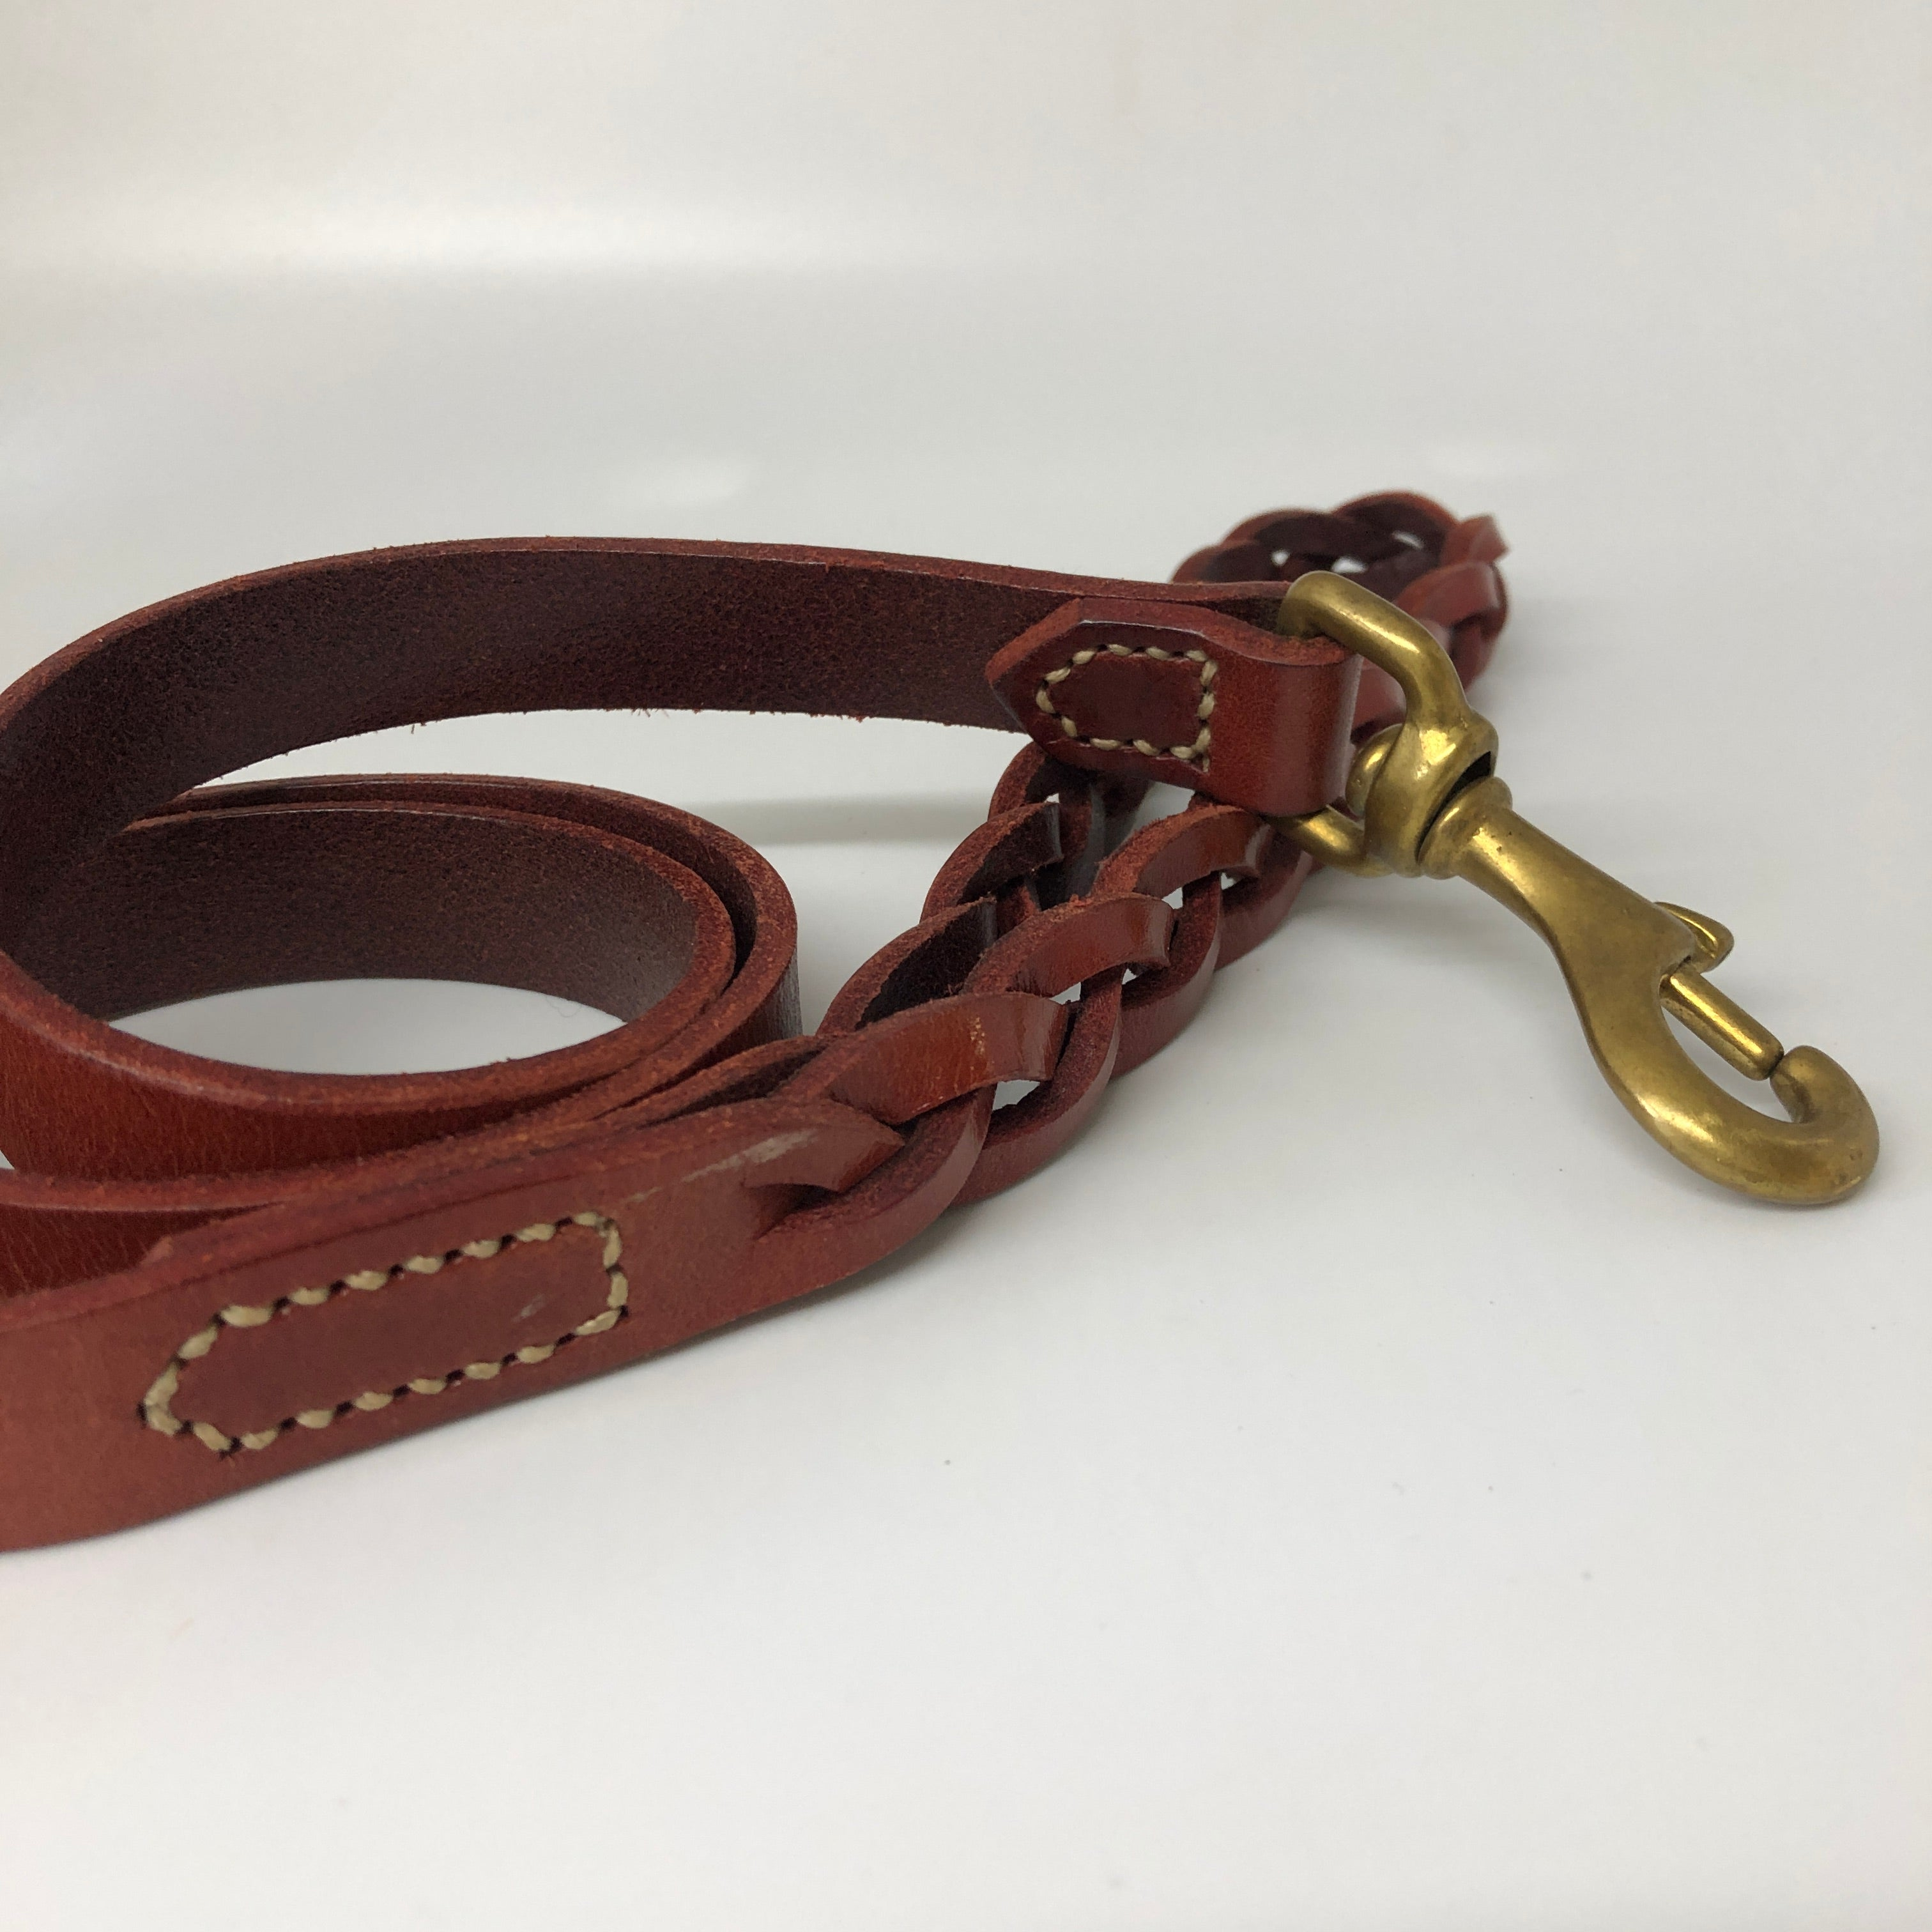 Bordeaux Plaited Leather Dog Lead